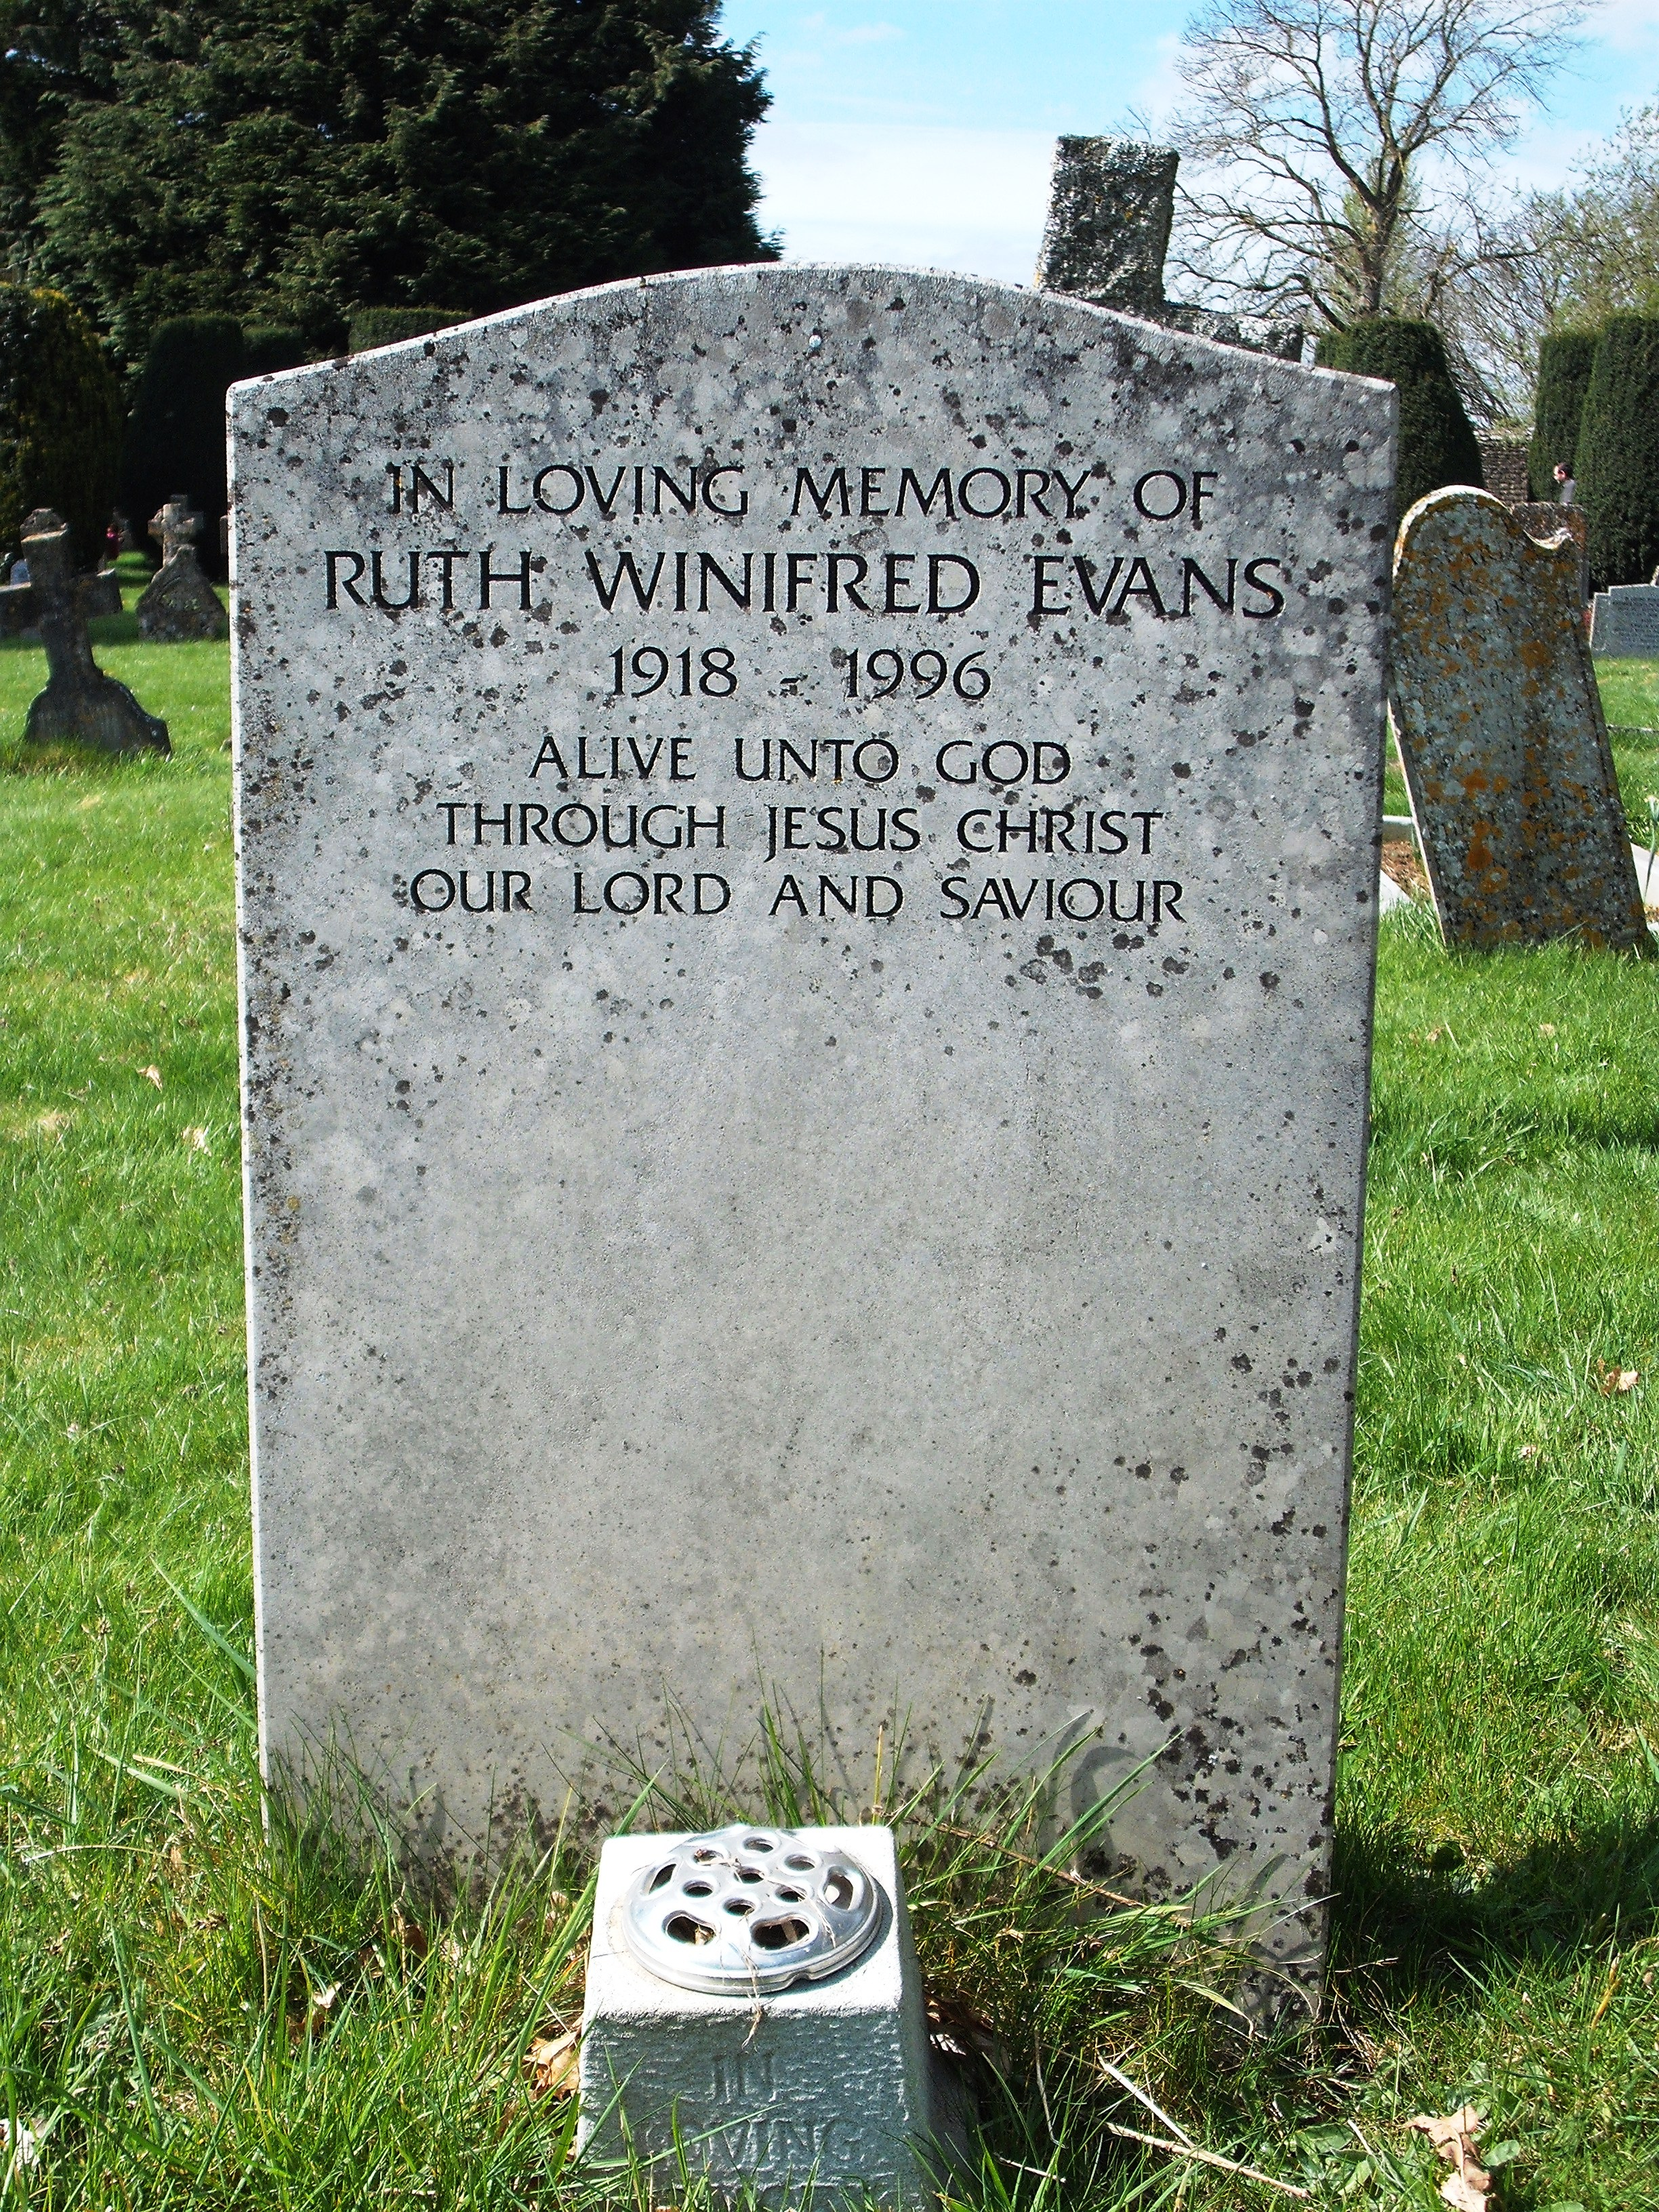 Forum on this topic: Charles Laughton (1899?962), winifred-evans/